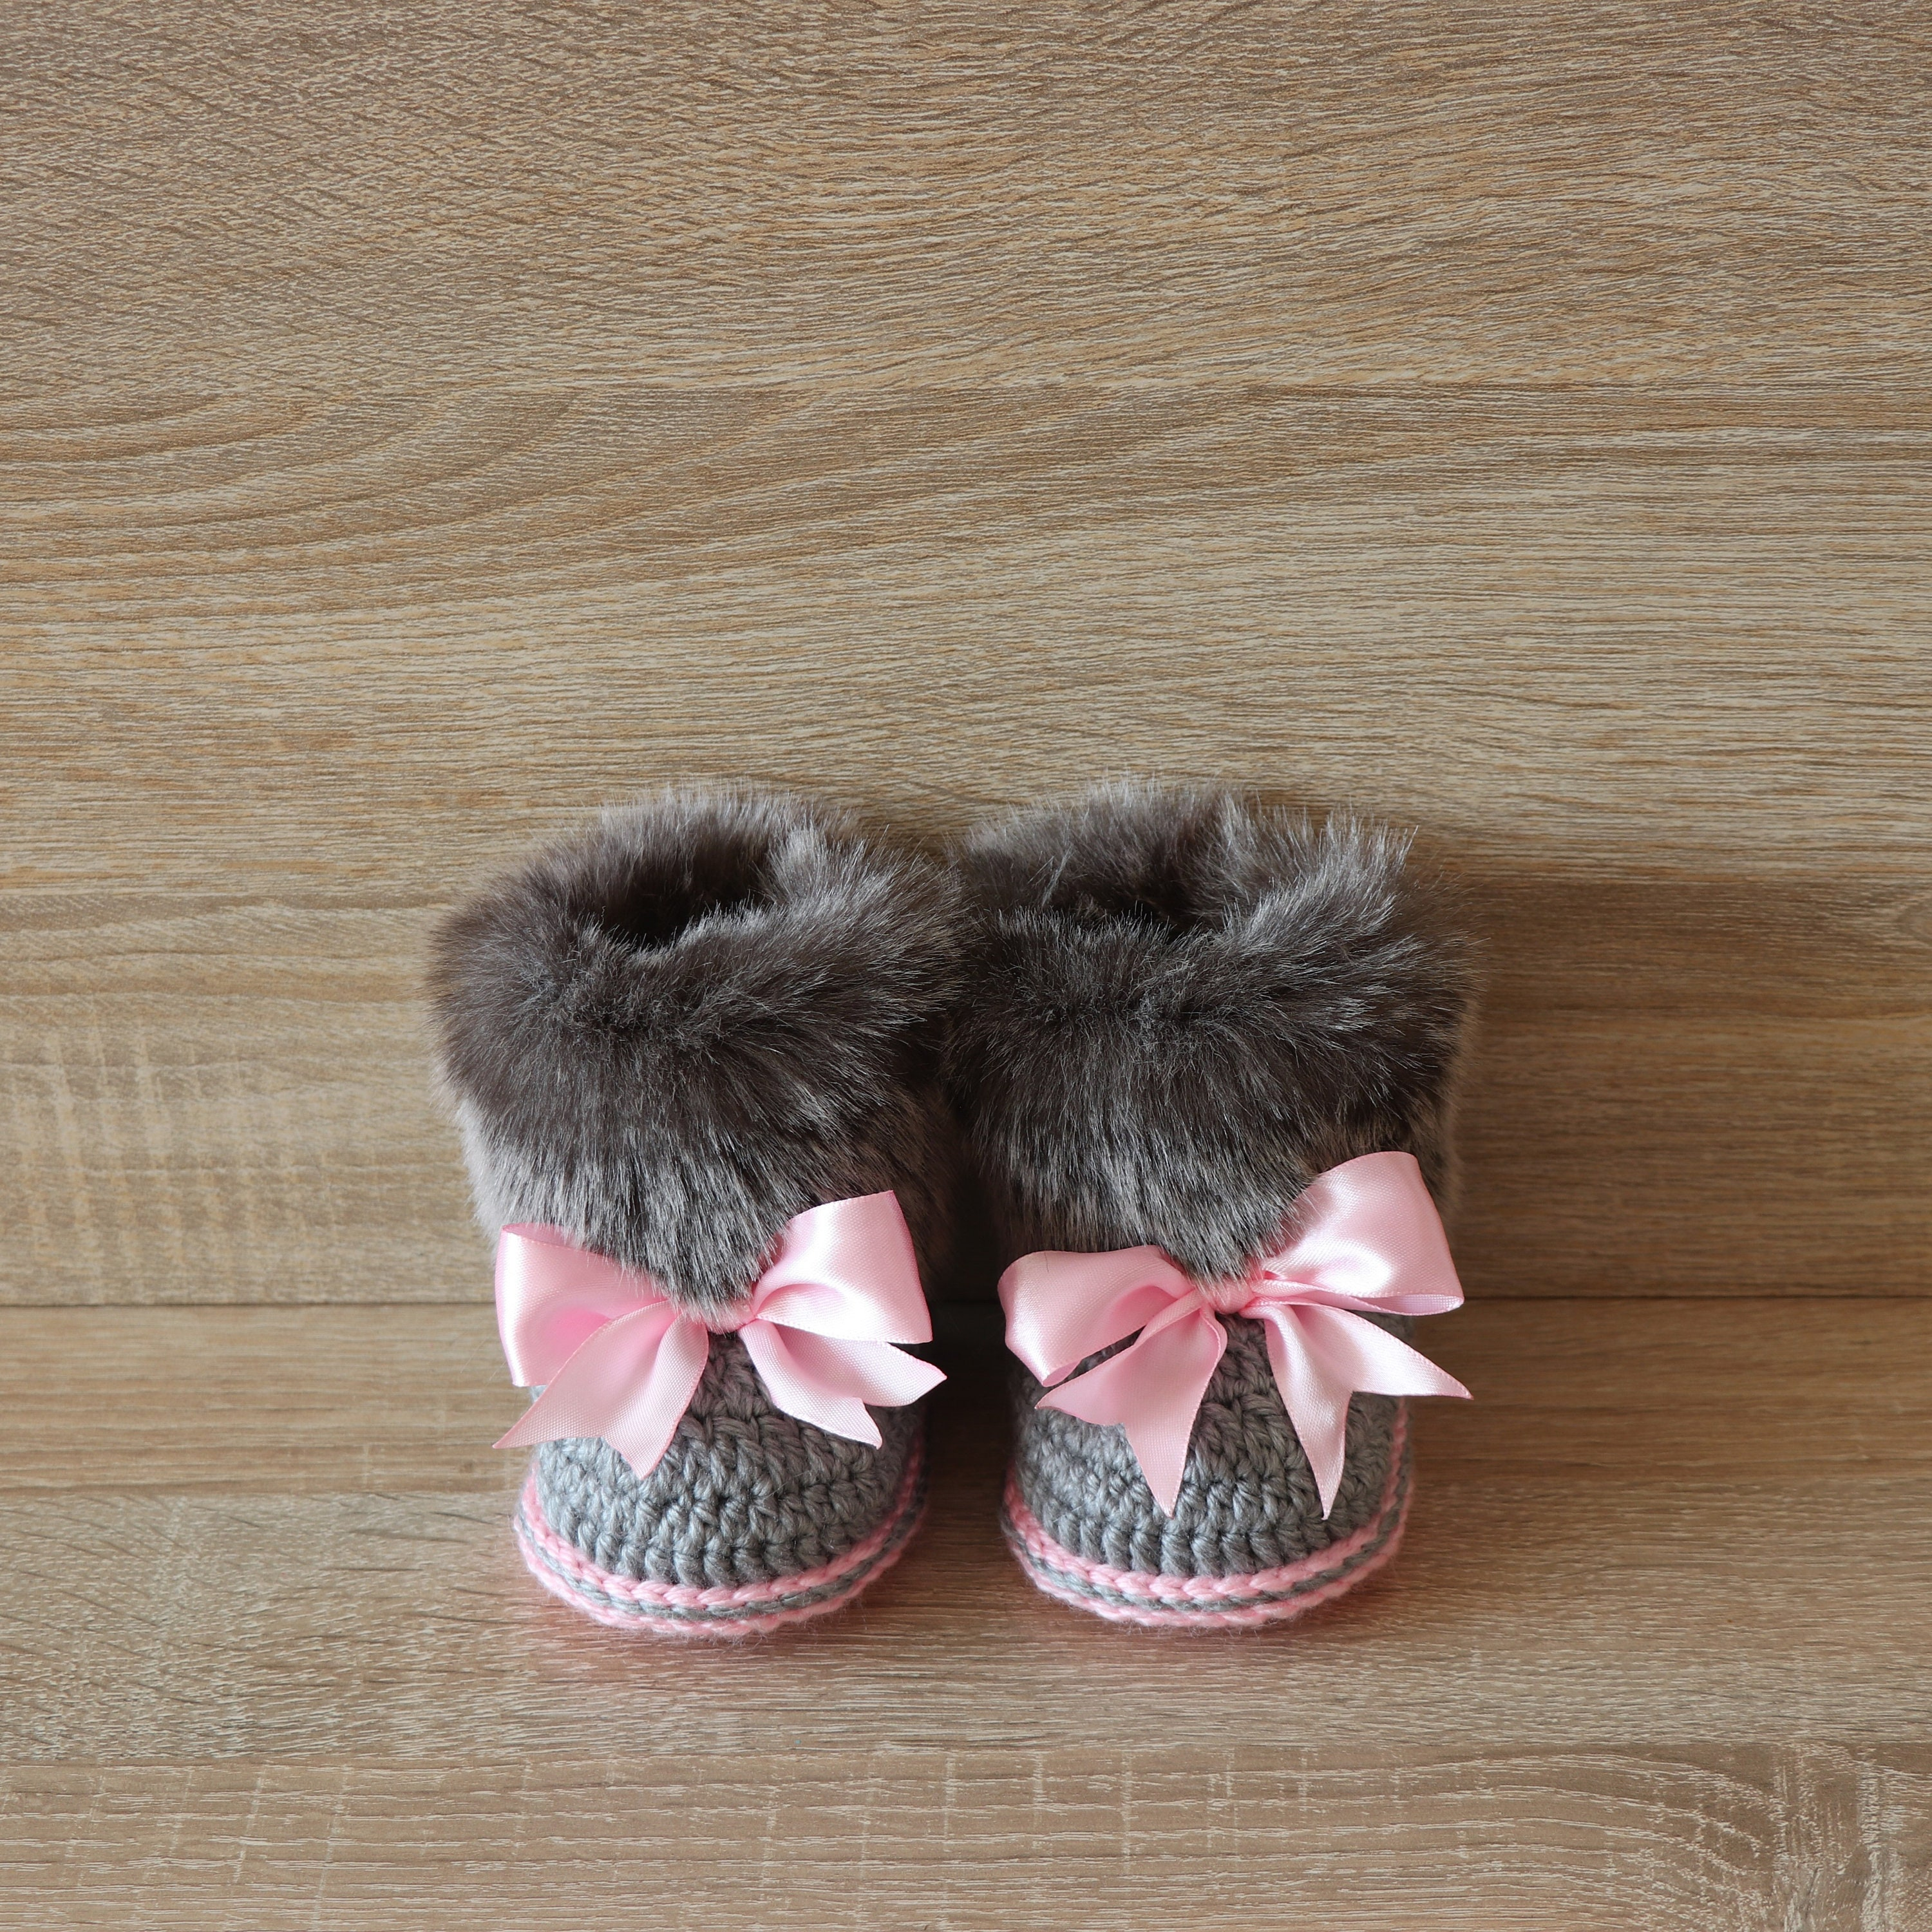 af3852720b2b8 Faux Fur crochet baby girl Booties - Preemie girl boots - Gray and pink ...